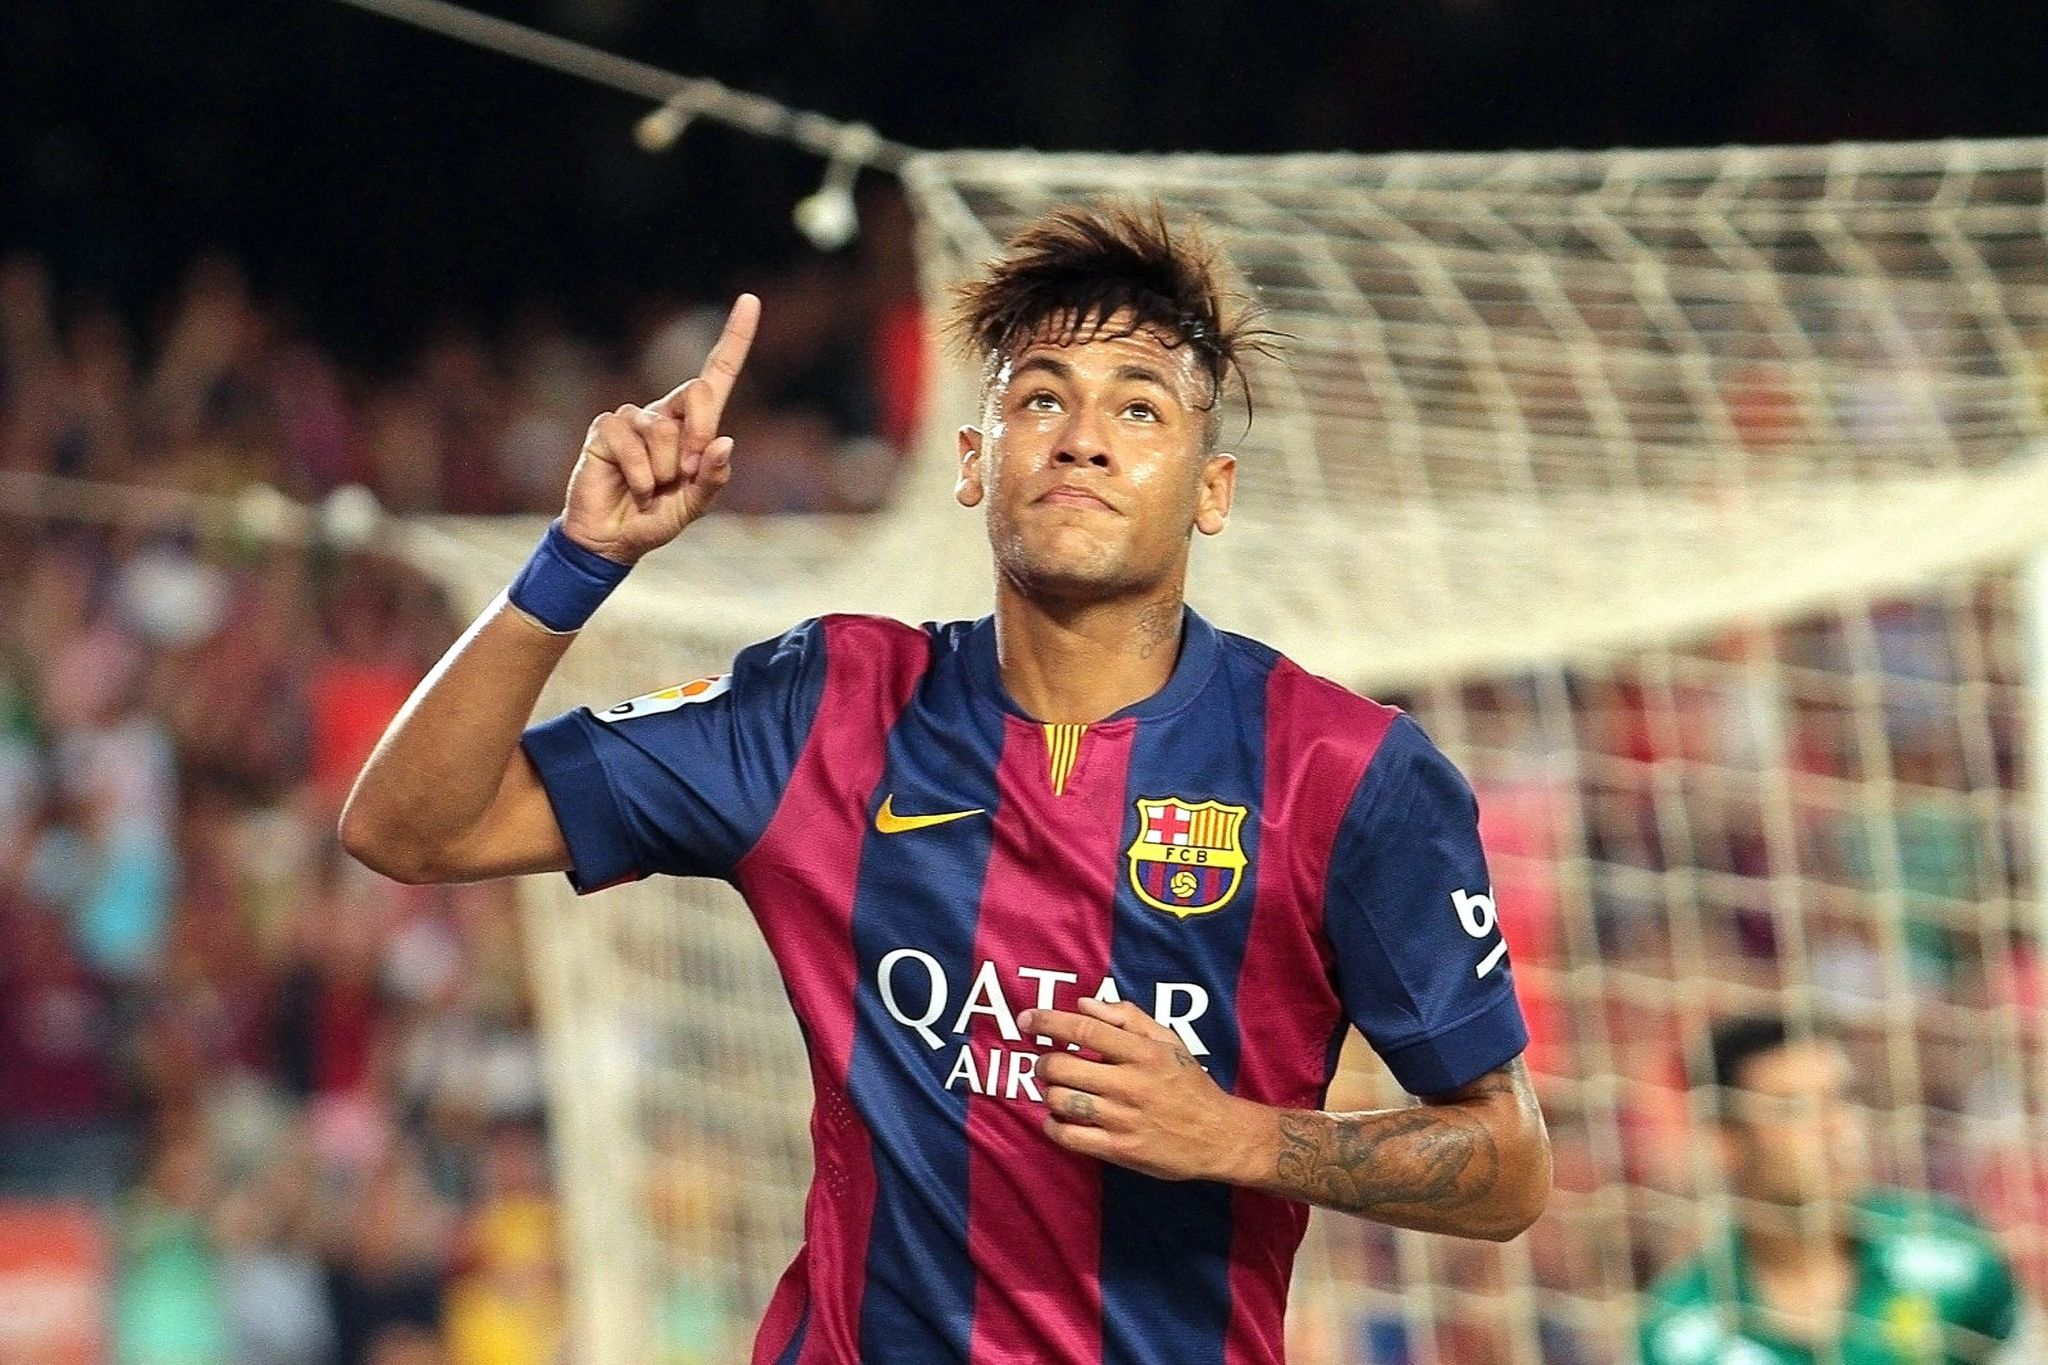 Hd wallpaper neymar - Neymar Wallpaper Hd Pack